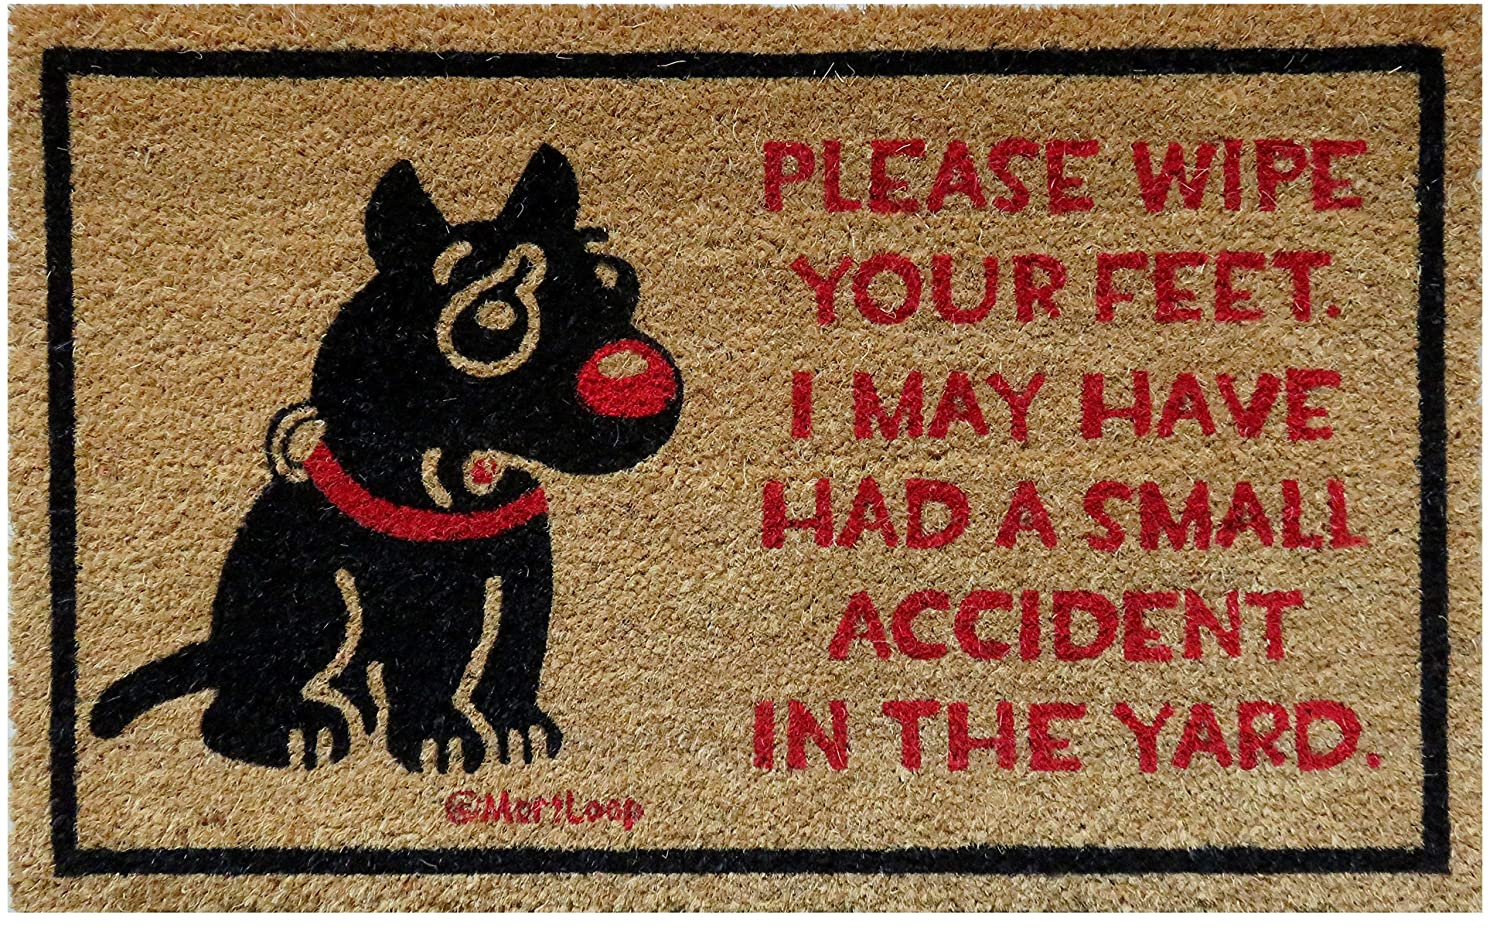 Amazon.com : Funny Outdoor Dog Welcome Mat Coir With a Humorous ...